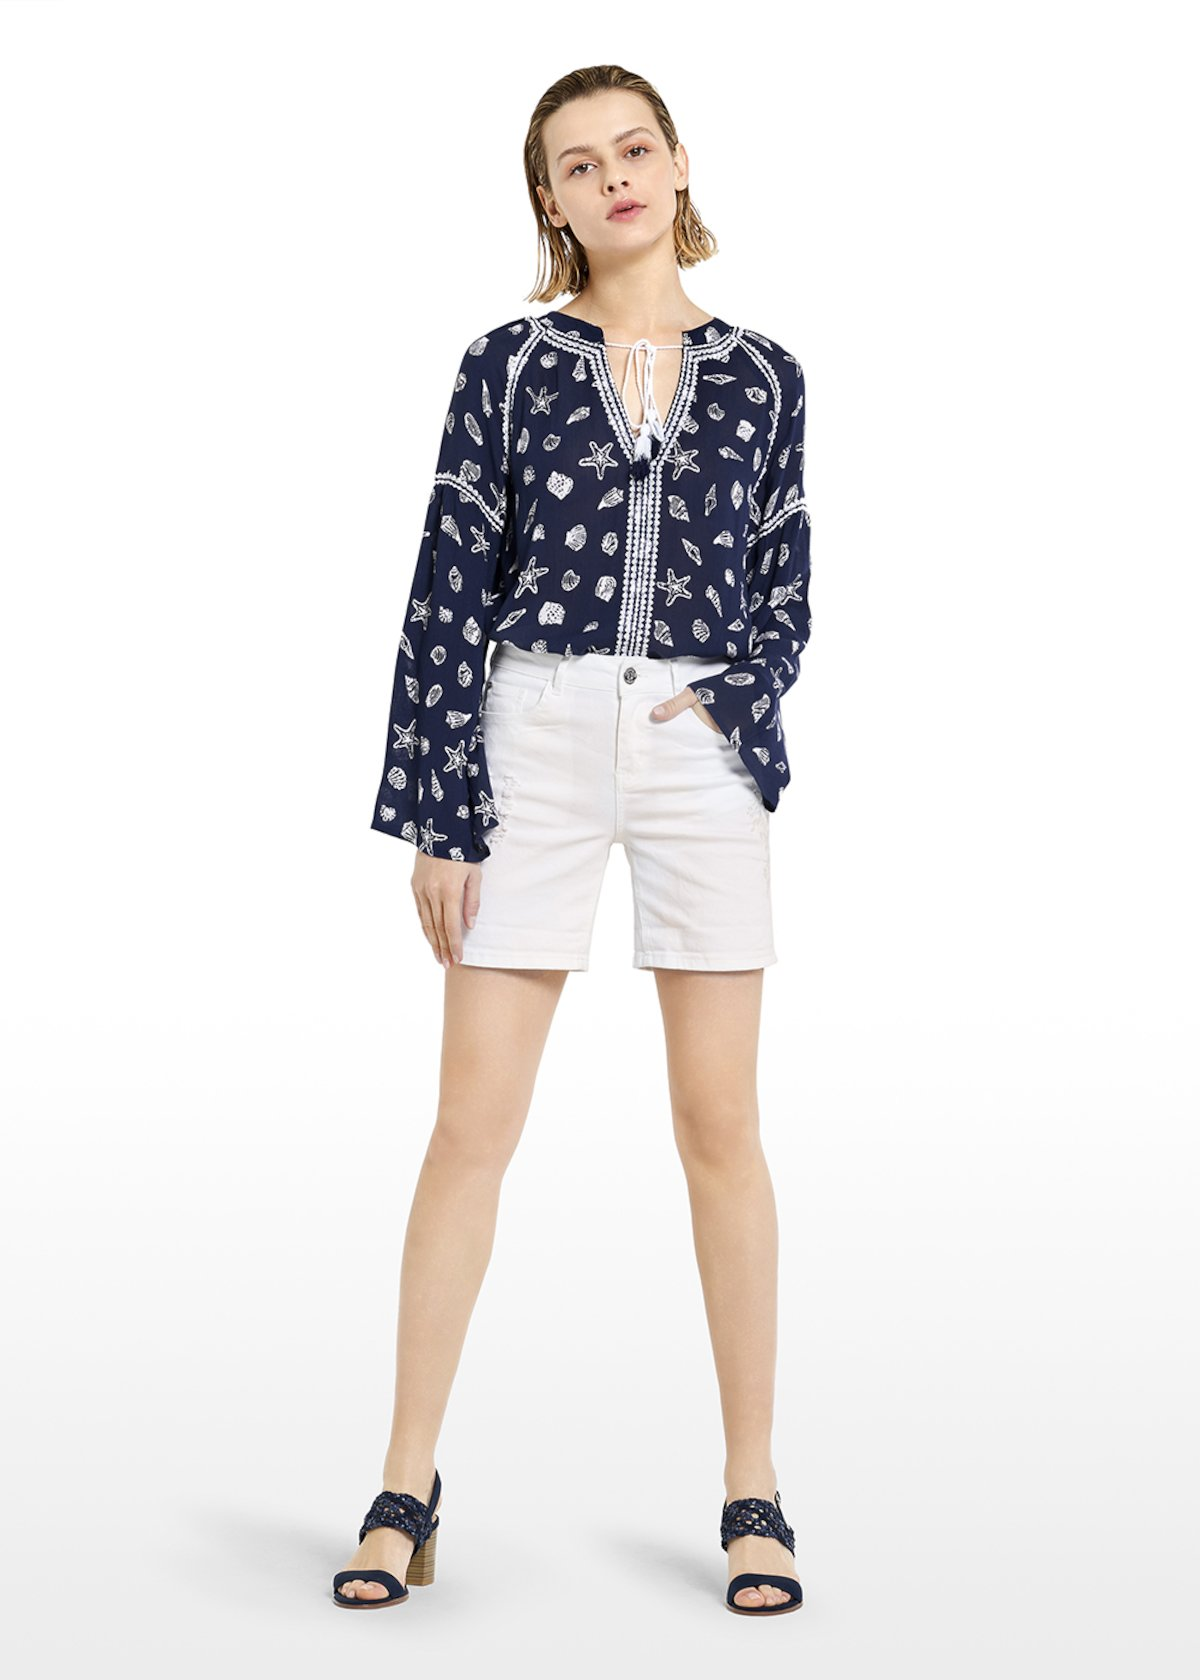 Byron Bermuda shorts with embroidery in tone - White - Woman